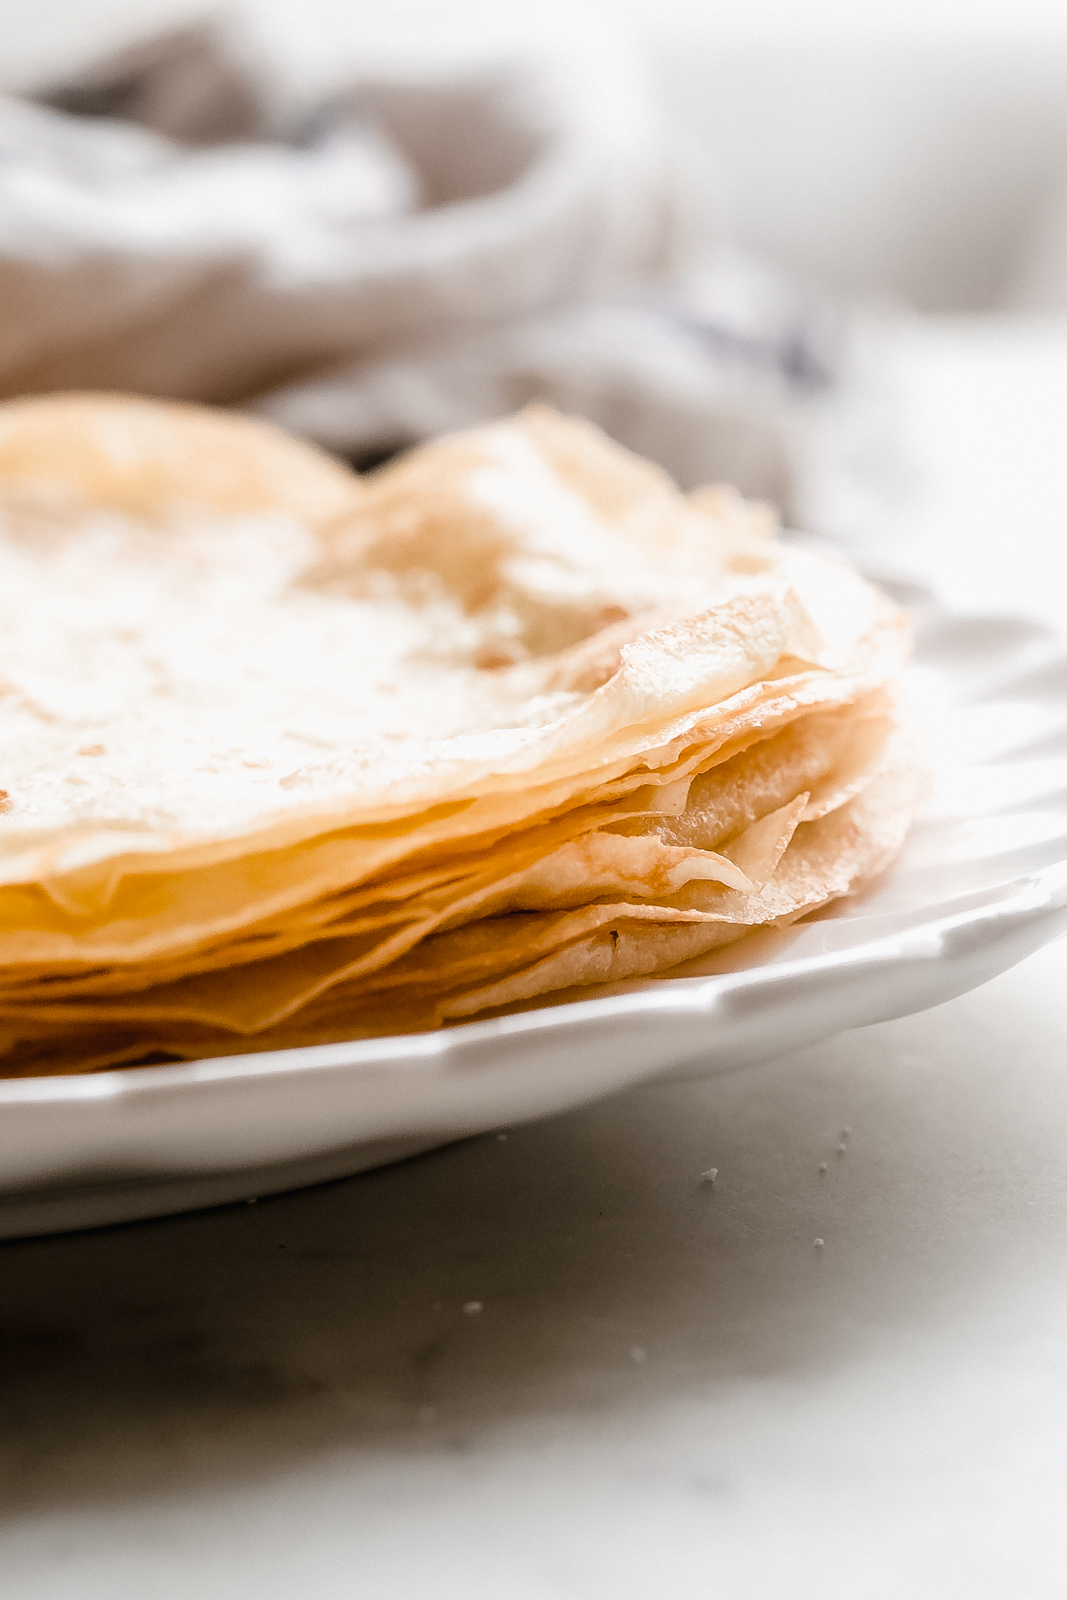 stack of prepared crepes on a white plate on marble surface